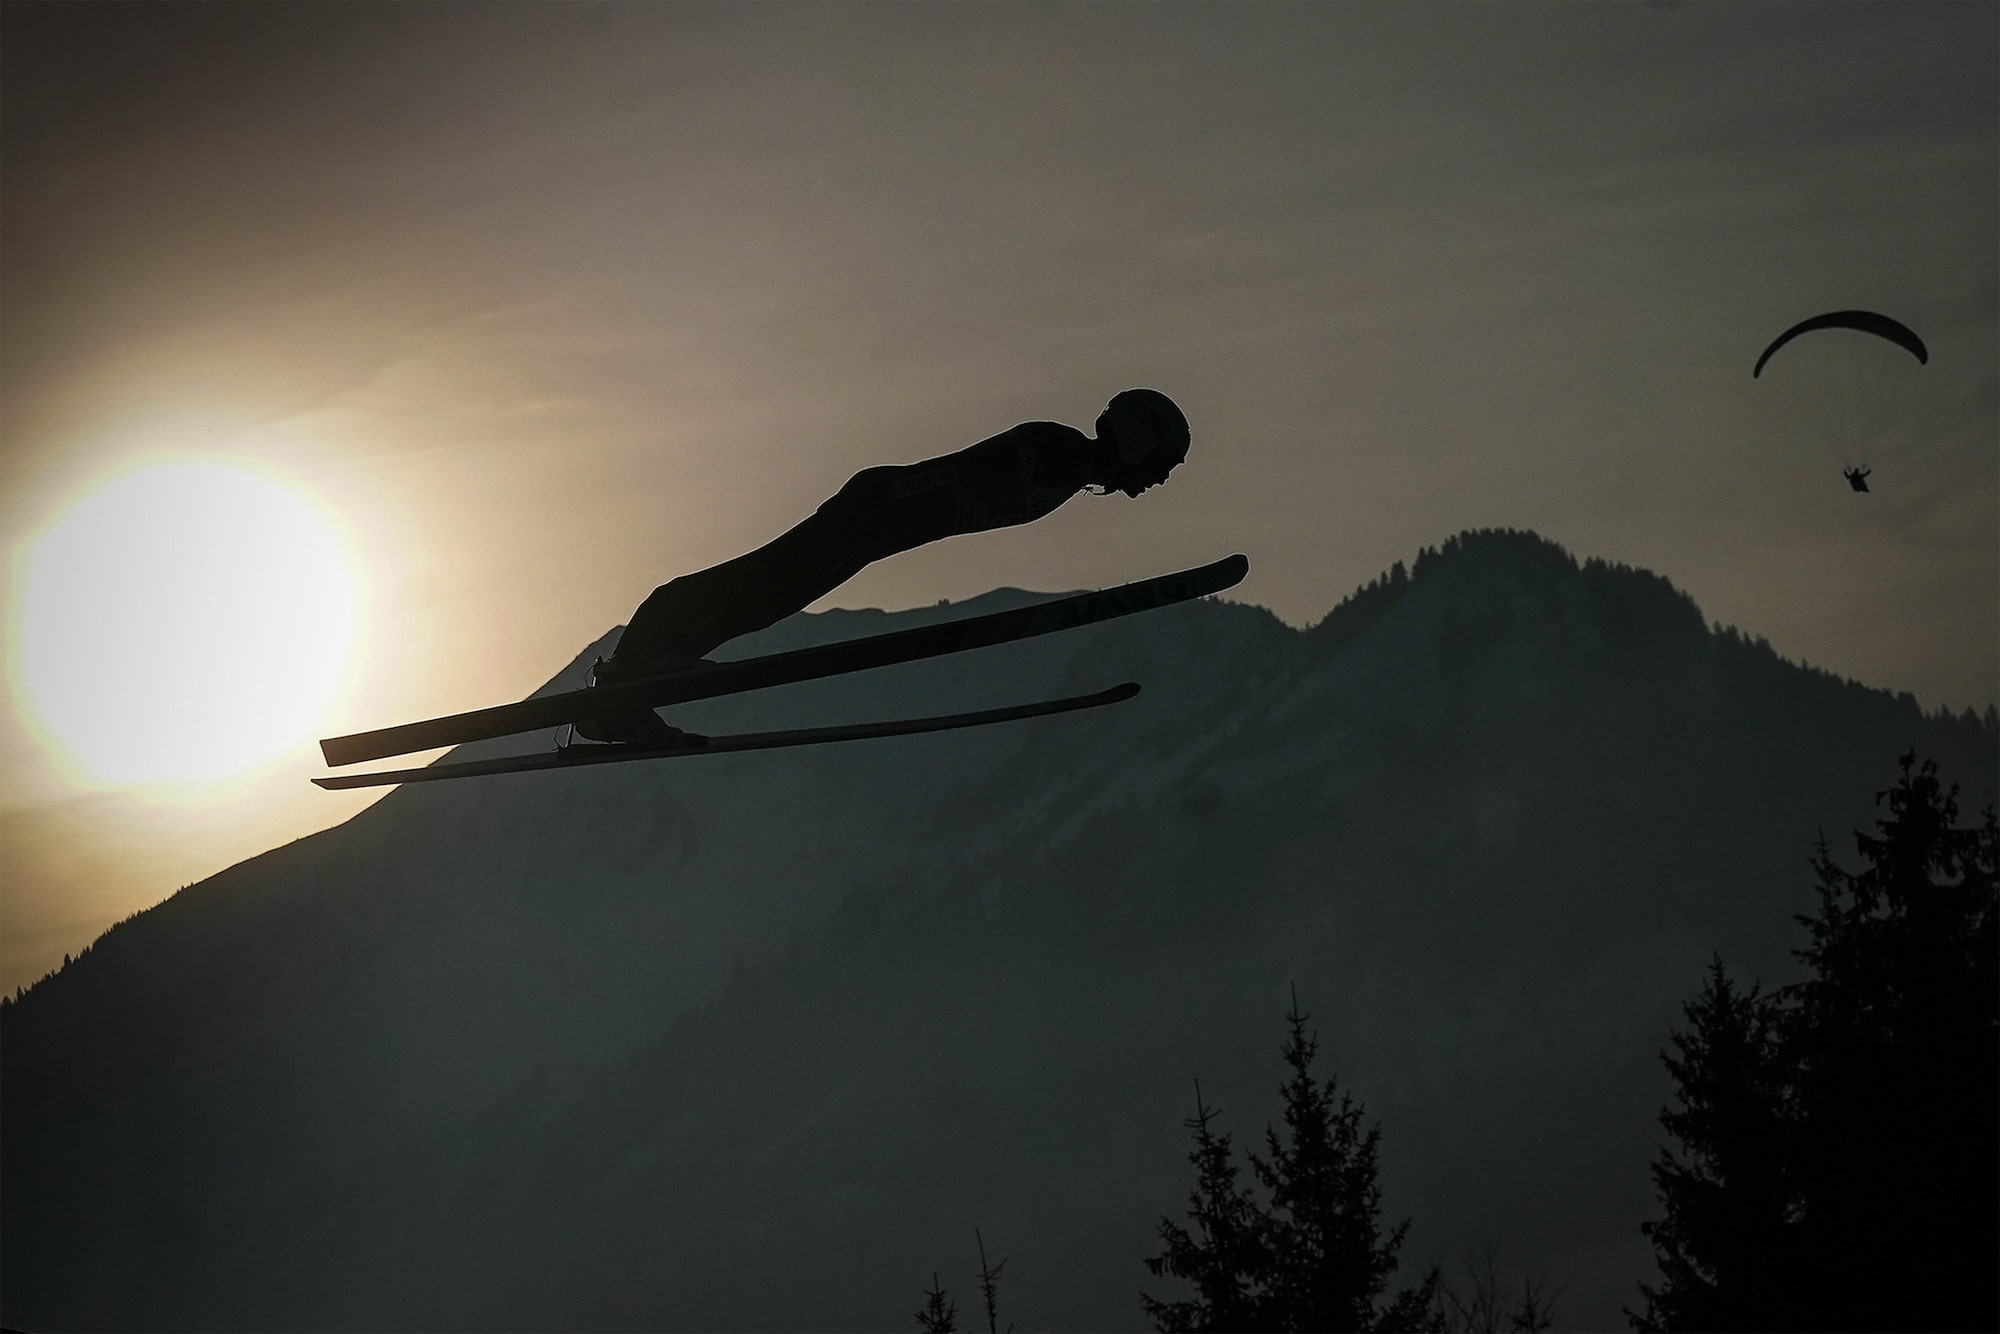 tomasz markowski sony alpha 9 ski jumper sideways silhouetted against the sun with a paraglider in the distance